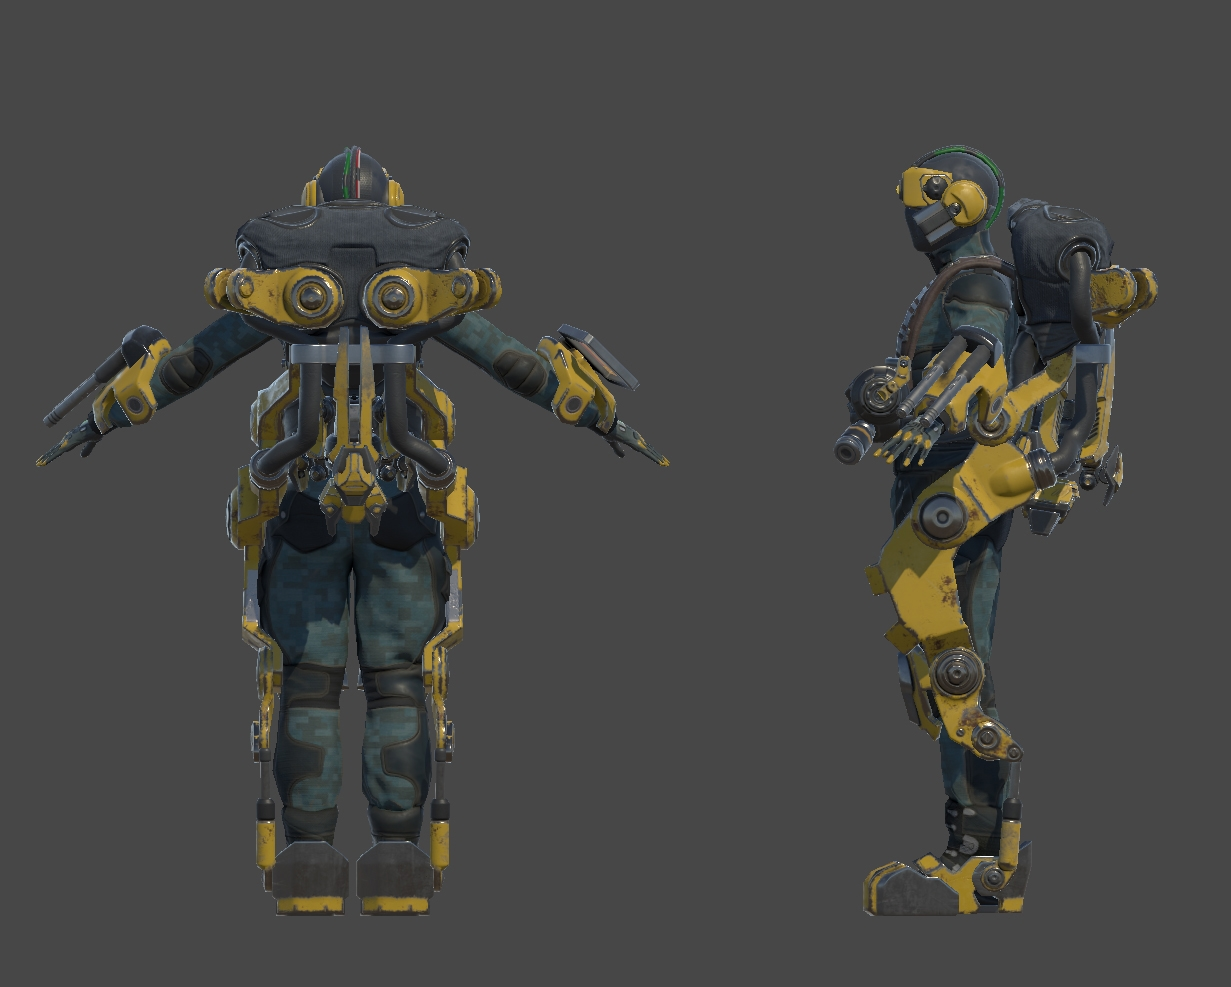 The Technician, now with his un-deployed turret stowed beneath the power pack of the exosuit.